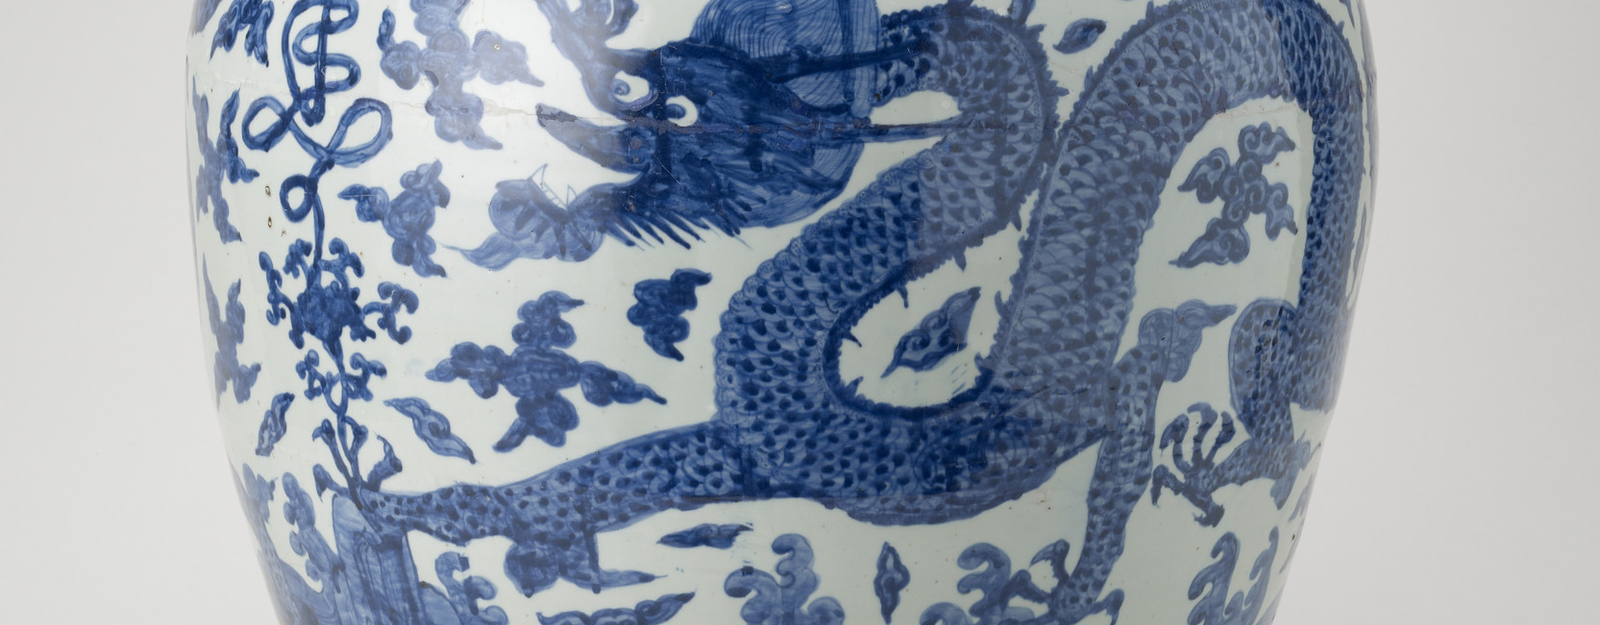 An ovoid-shaped Chinese Ming period porcelain jar painted in rich blue around the sides with two five-clawed dragons among clouds and with rocks and waves below.&nbsp; Round the shoulder a stylised <em>shou</em> (long life character) seems to grow out of